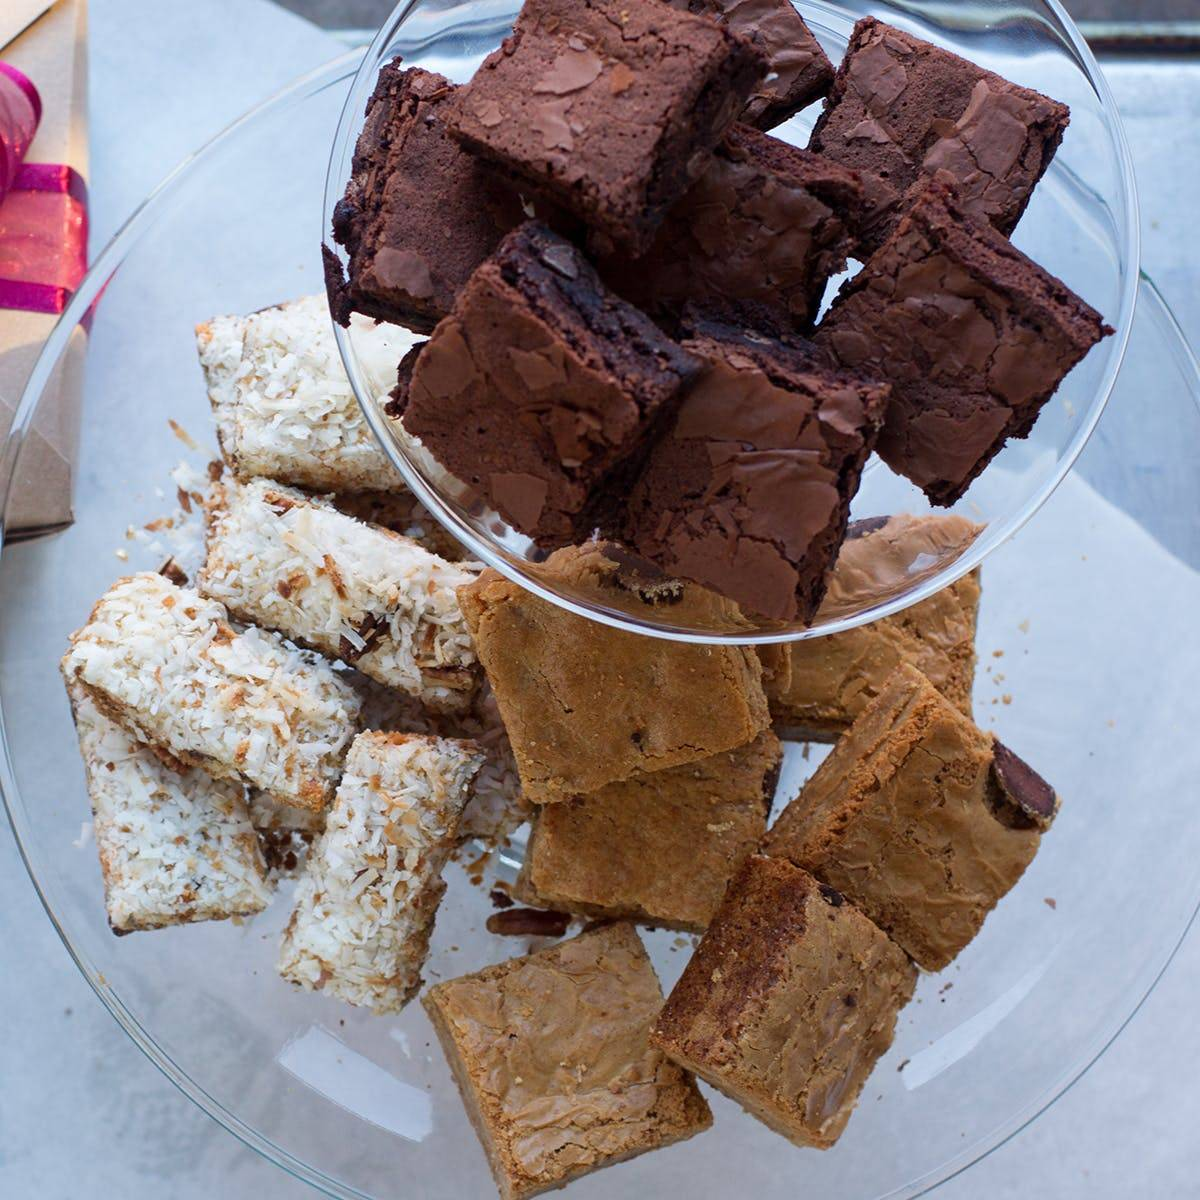 Evelyn's Kitchen - Brownie Bars - Choose Your Own 12 Pack